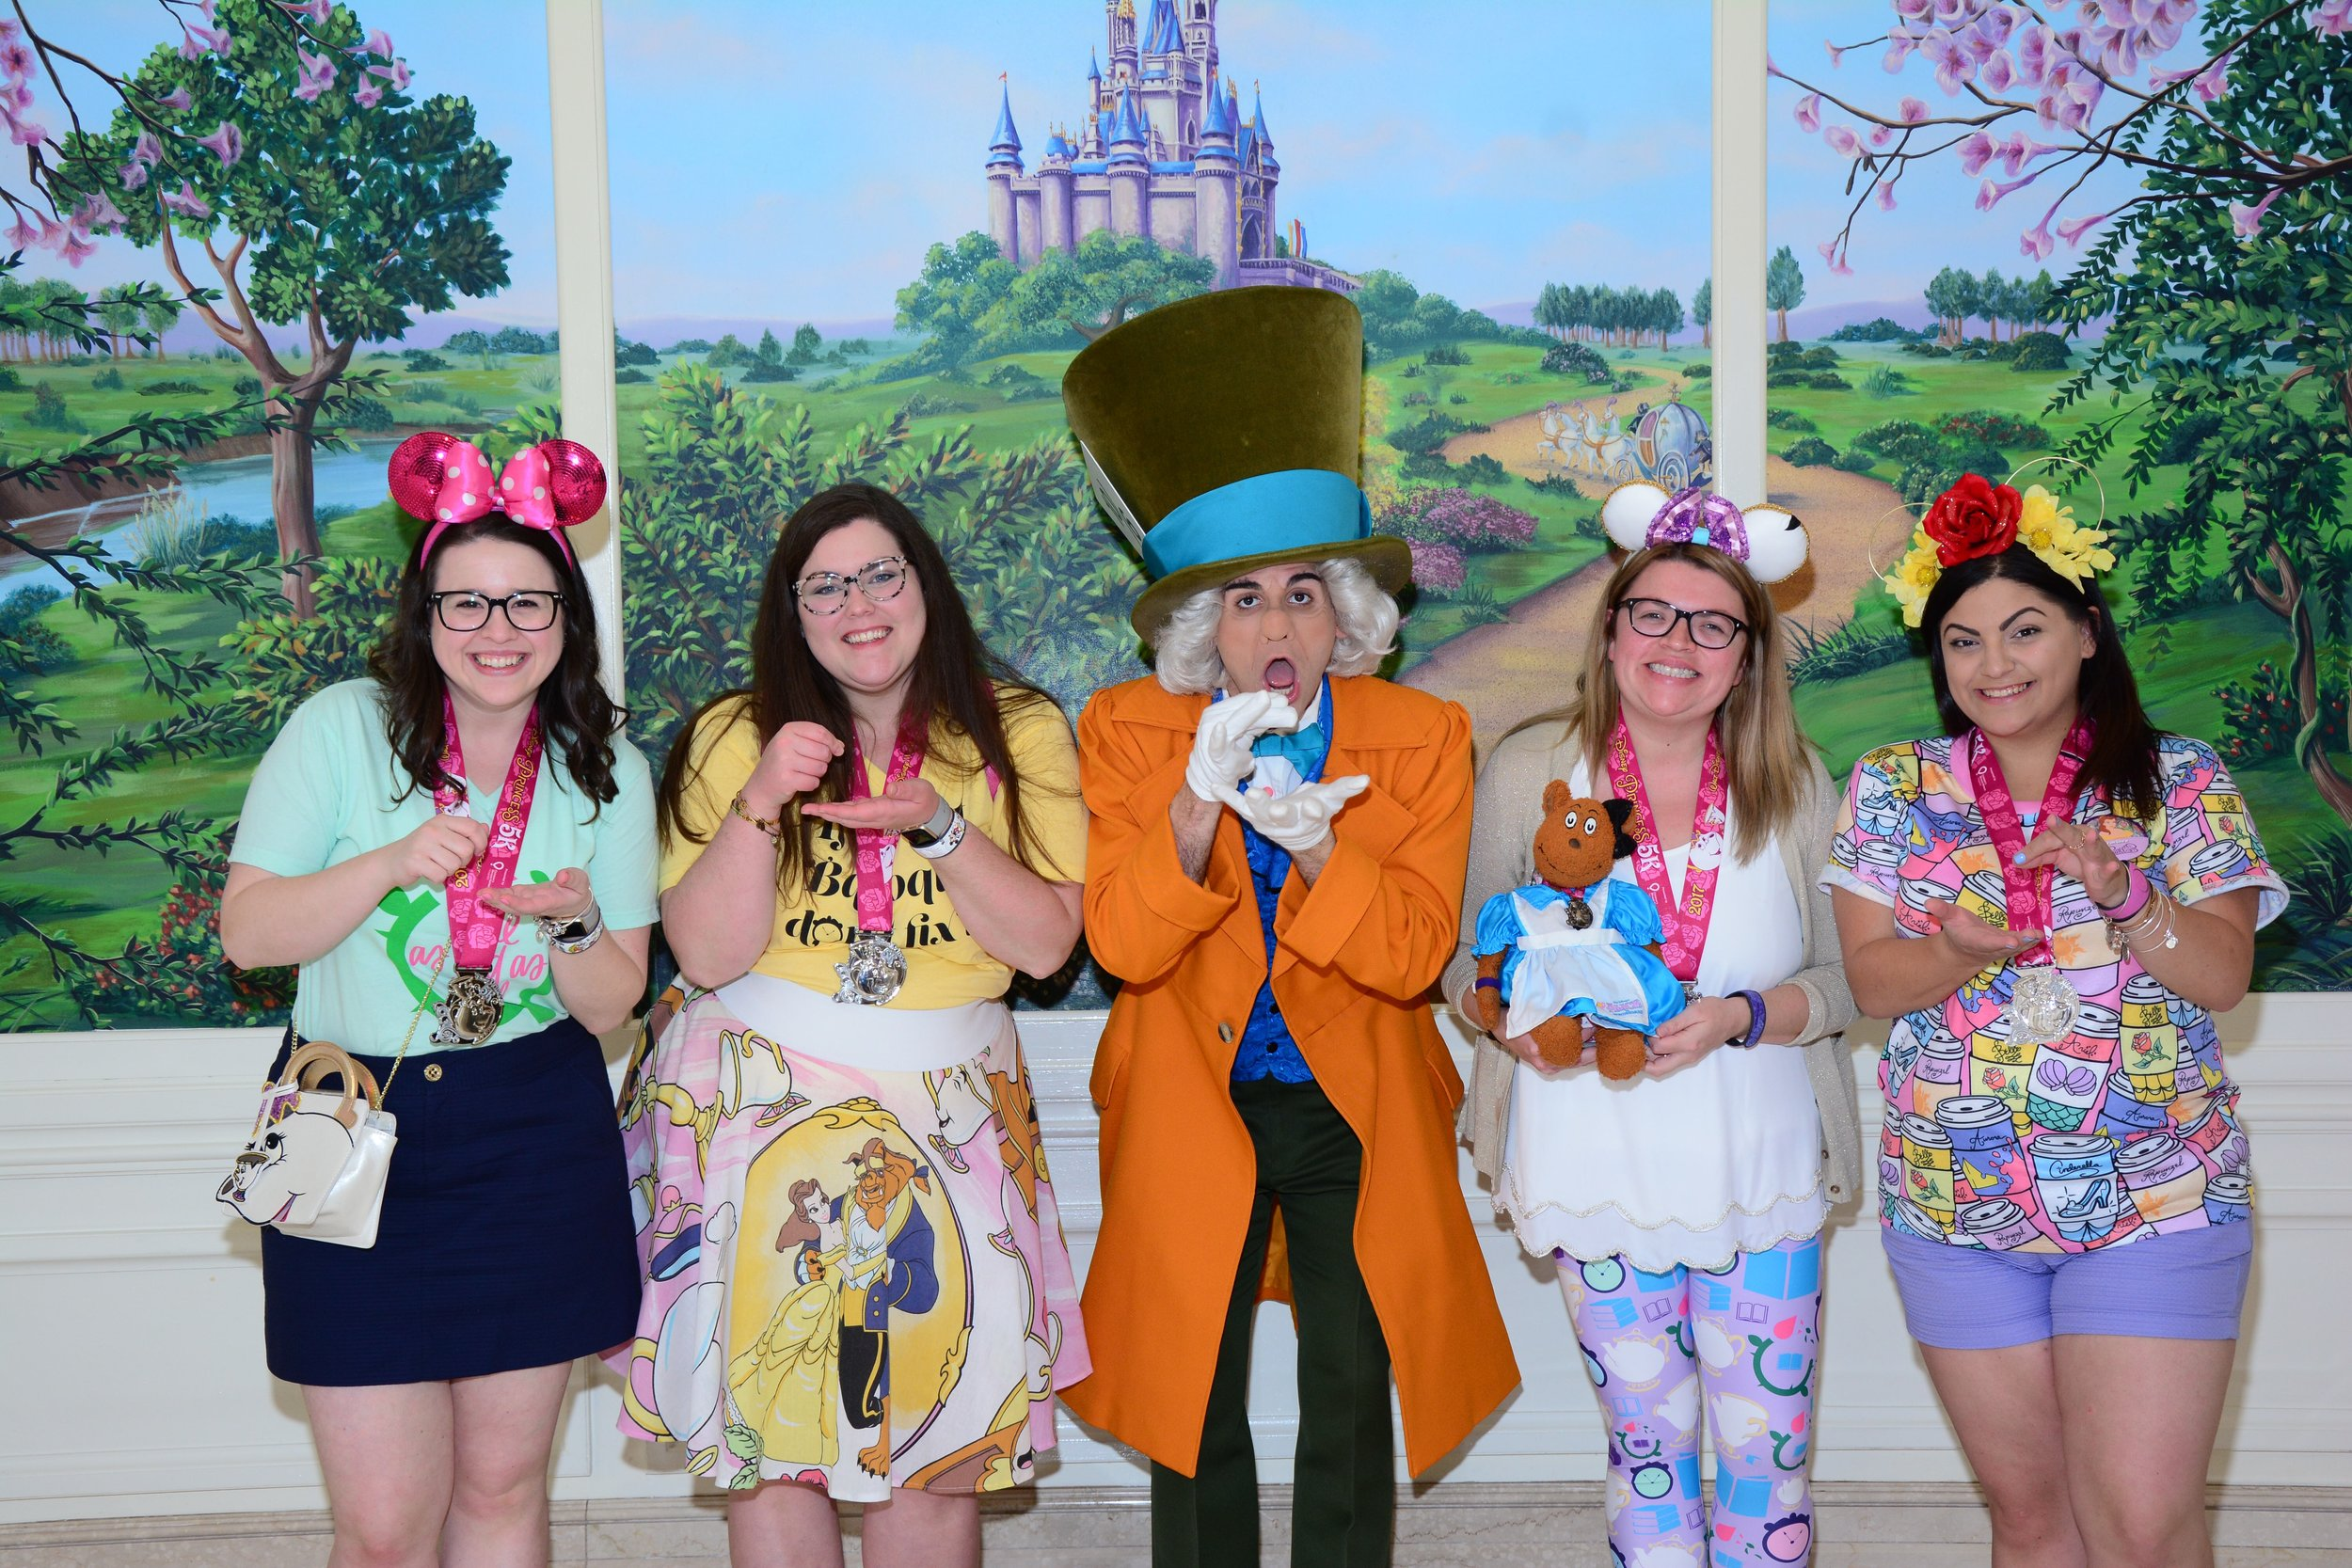 The rest of my brunch crew in their Beauty and the Beast inspired looks. You can check out their cute Instagram accounts here: Left to right  Me ,  Meghan ,  Casey  and  Beth .